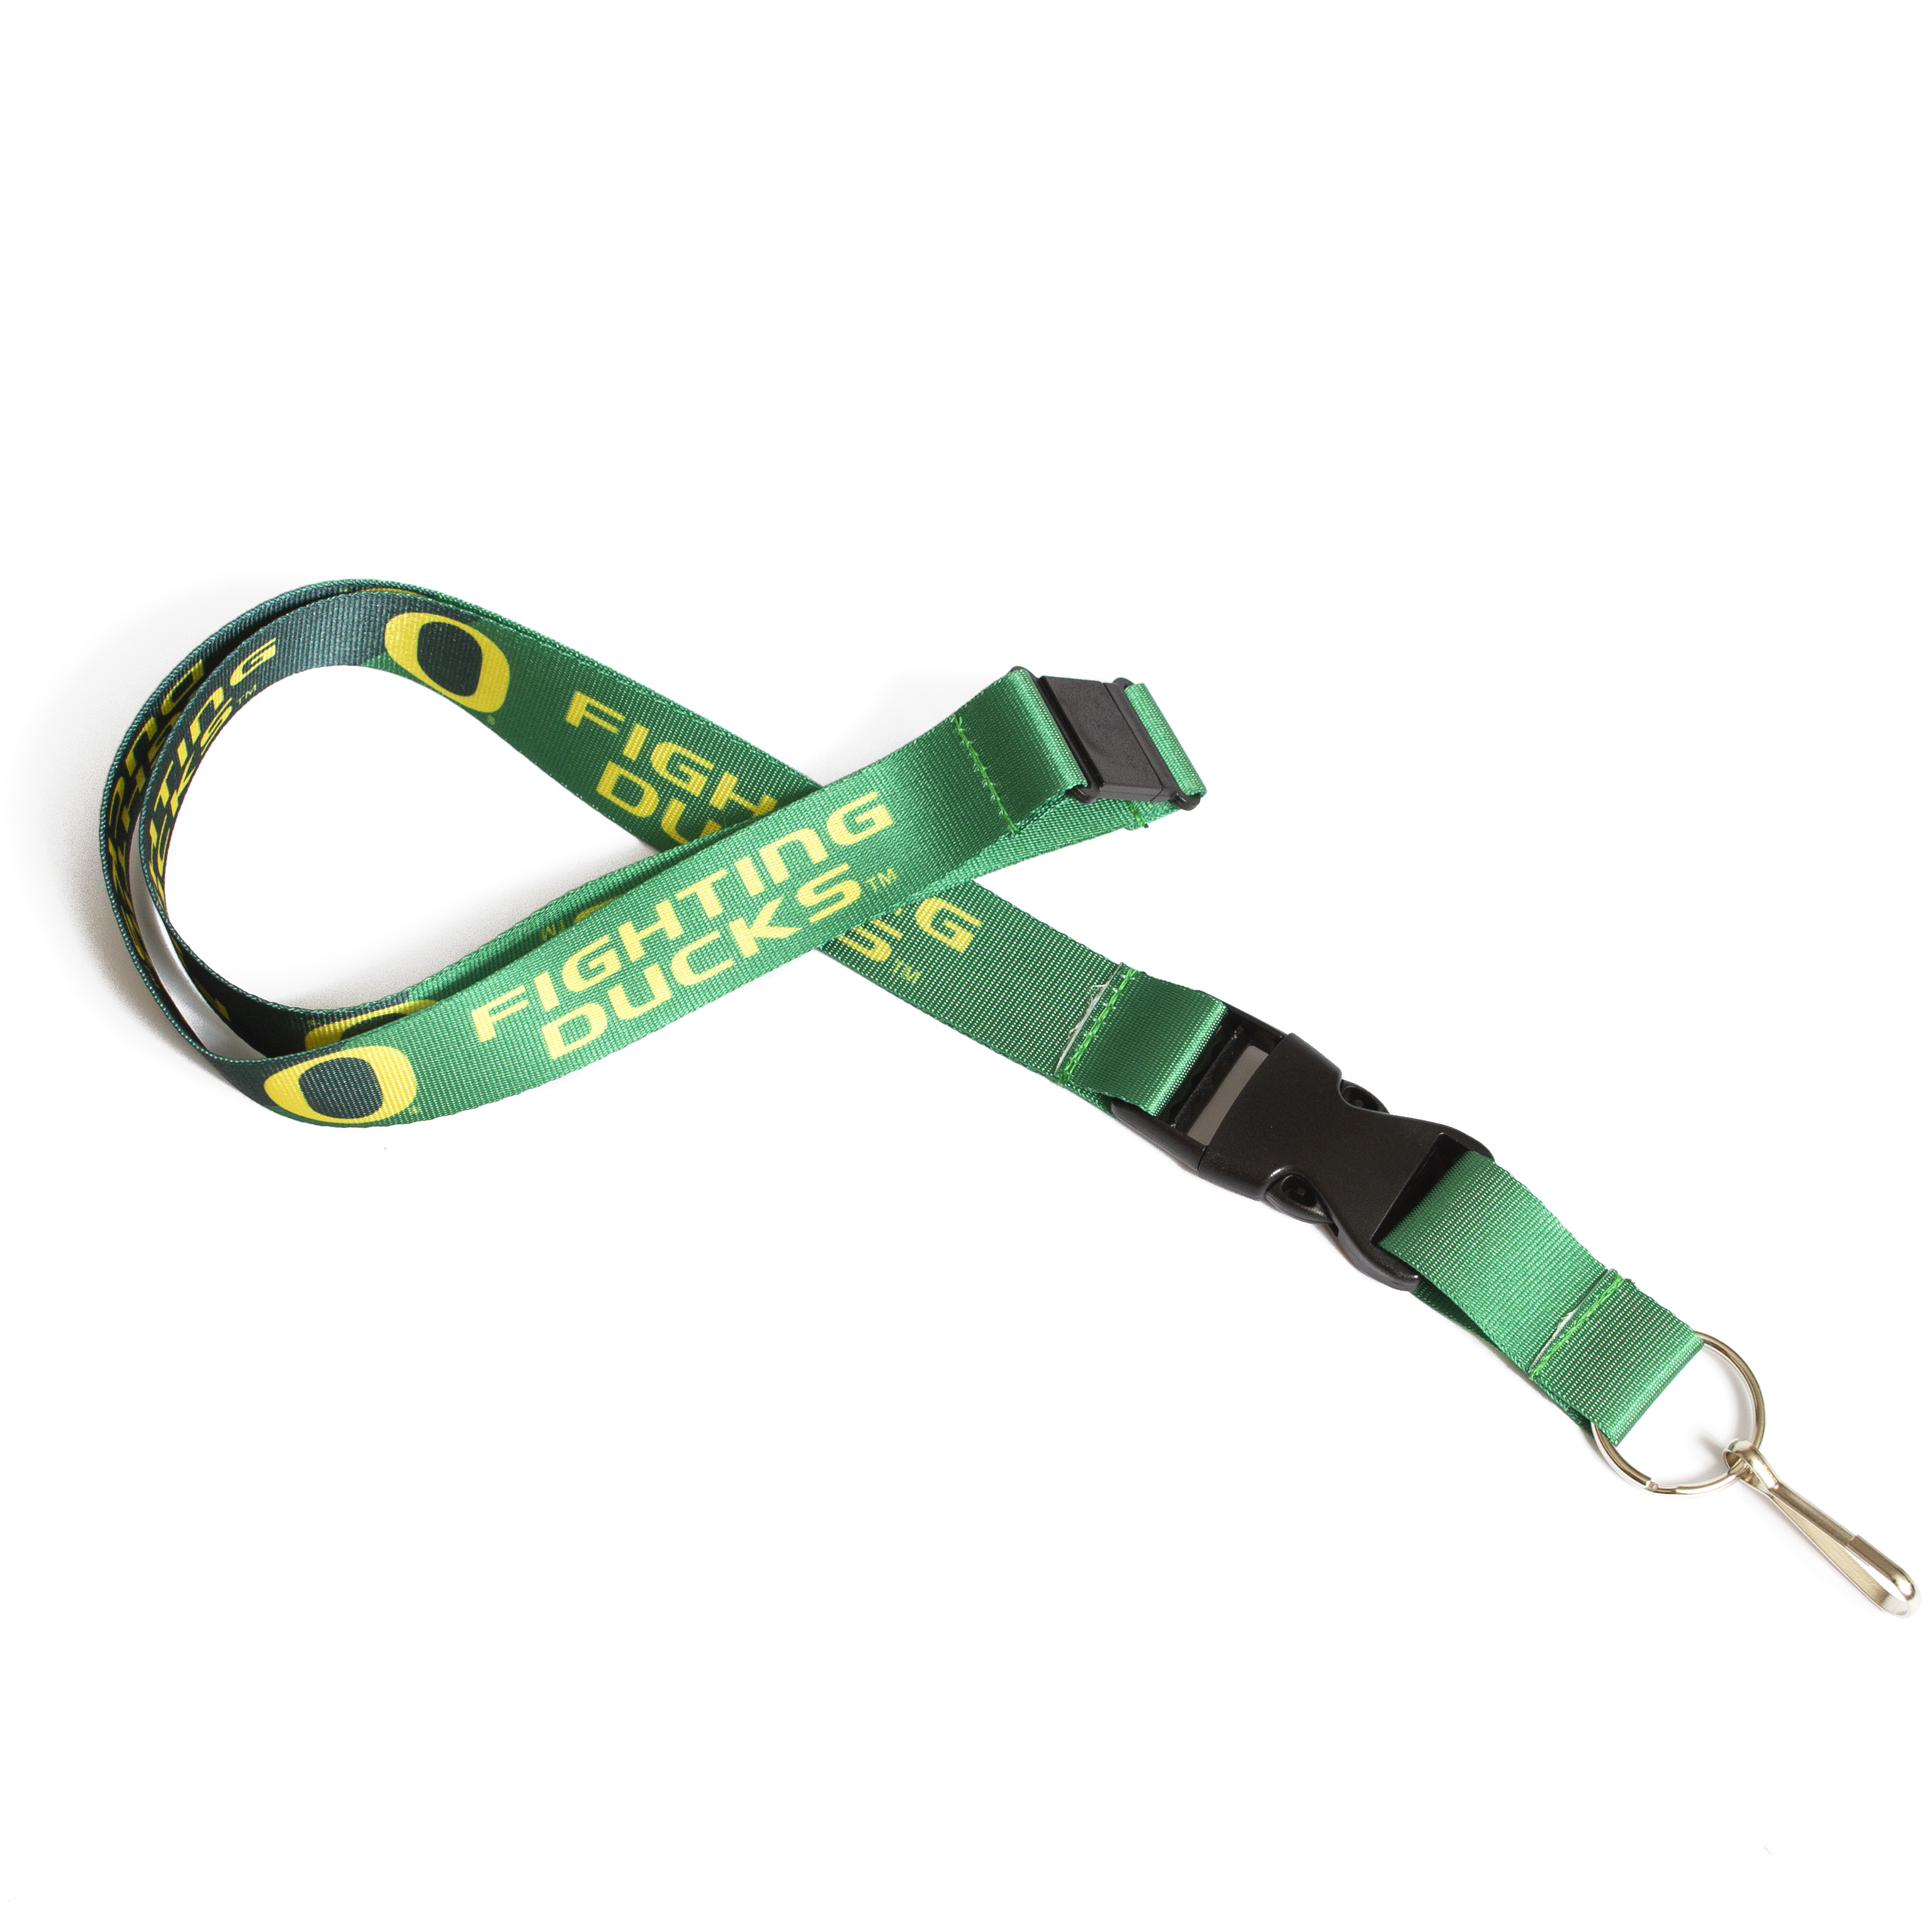 O-logo, Fighting Ducks, Metal Hook, Lanyard